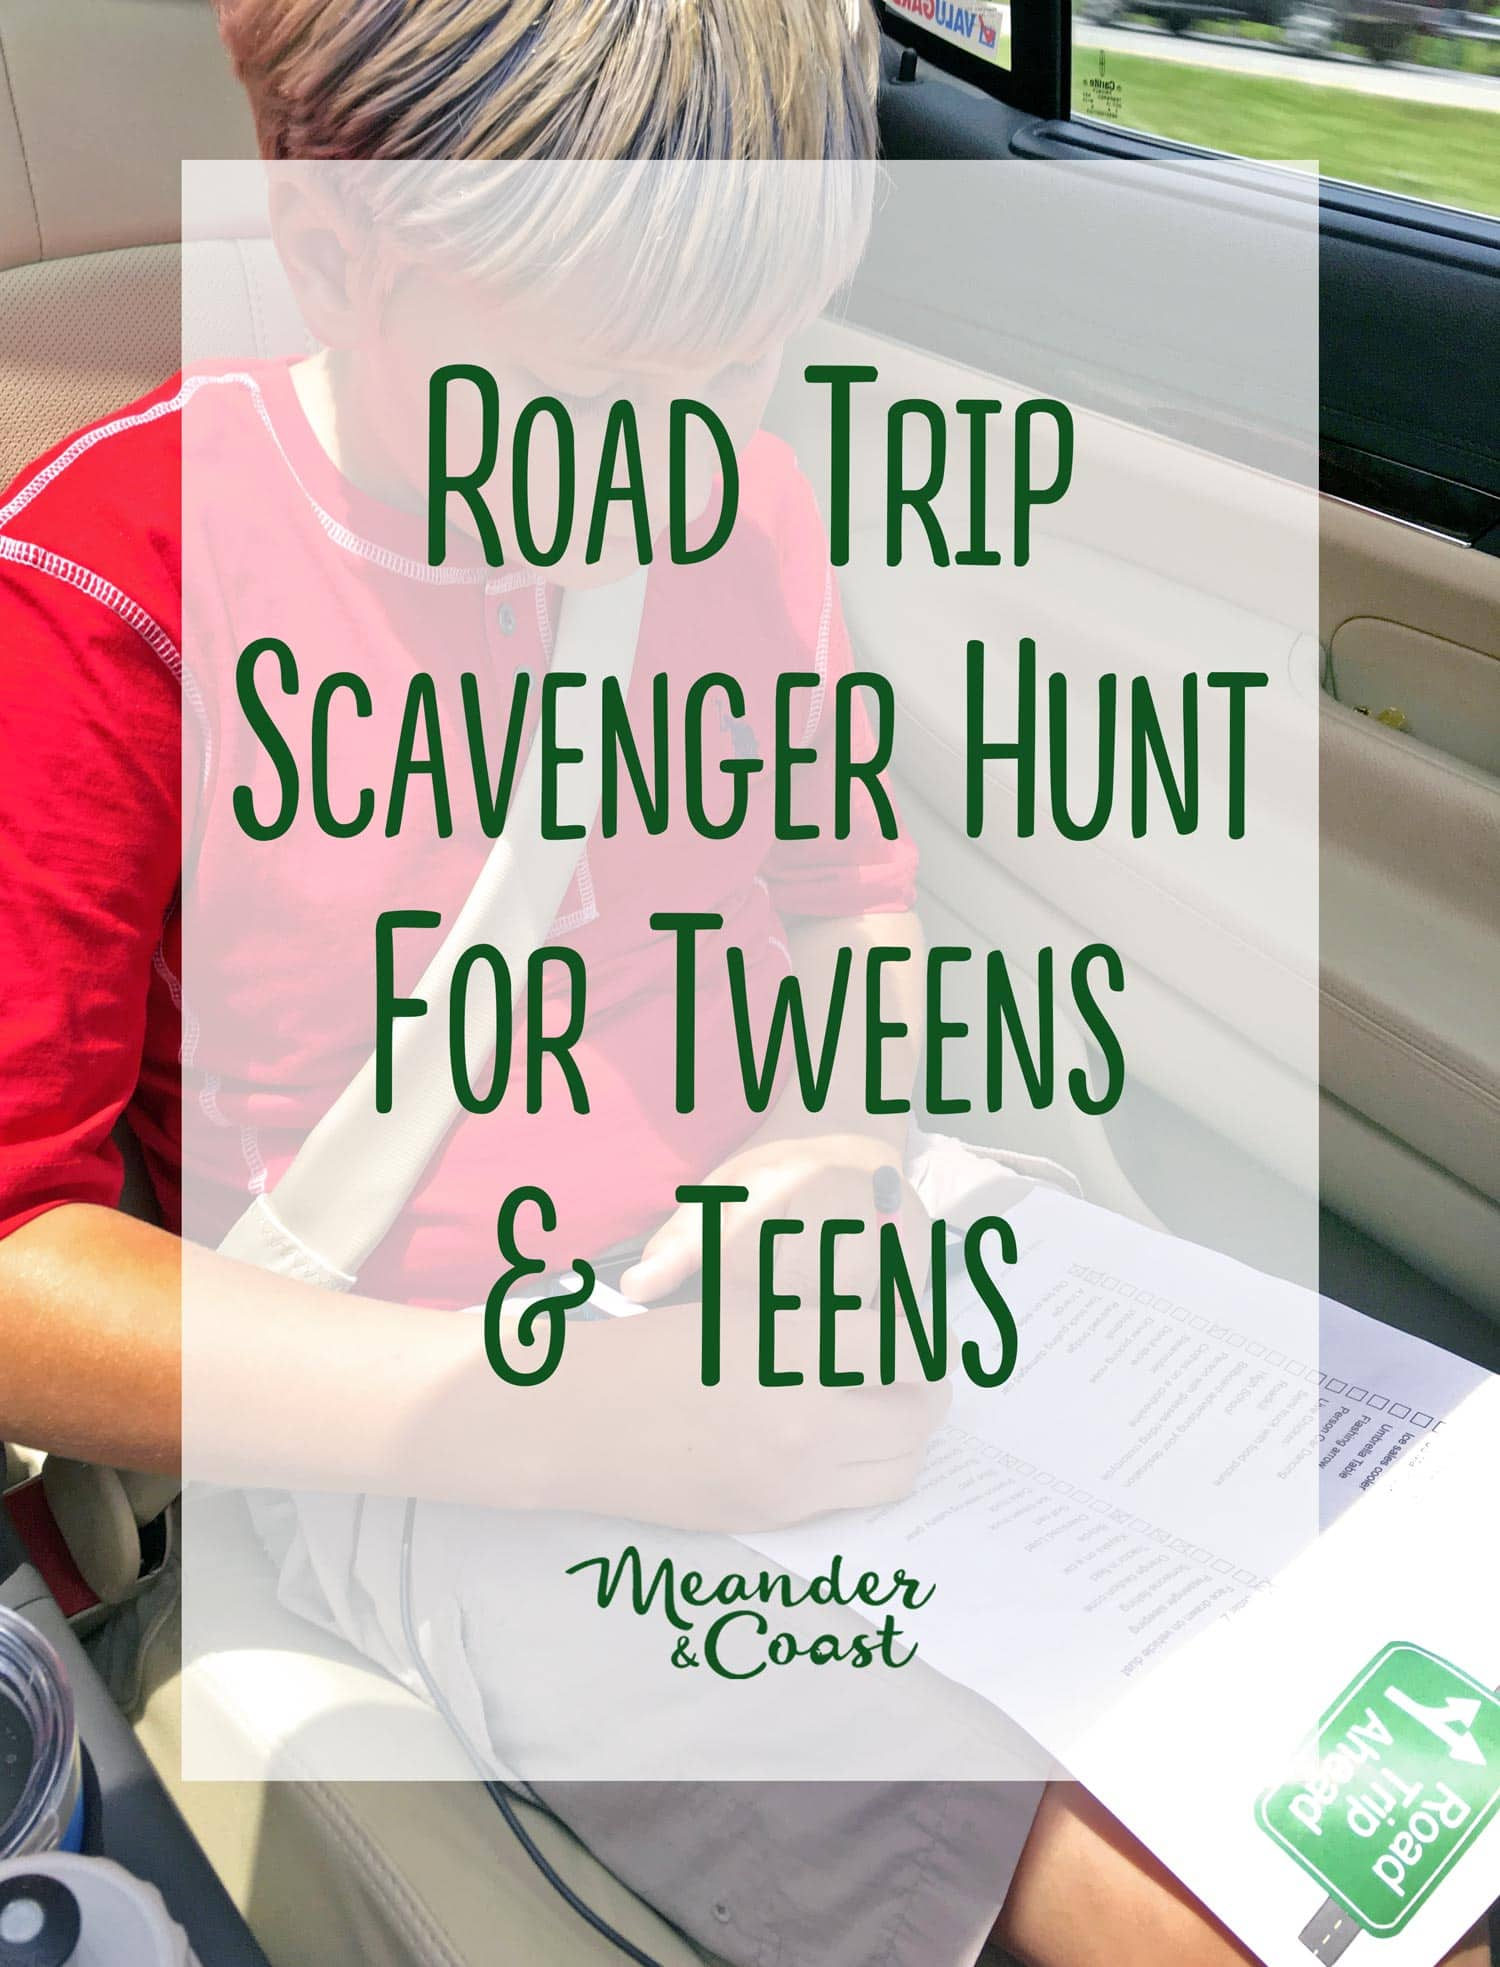 Finally! Some travel games for older kids! | Free printable Road Trip Scavenger Hunt for Tweens and Teens. Meander & Coast #travelgames #scavengerhunt #teens #tweens #roadtrip